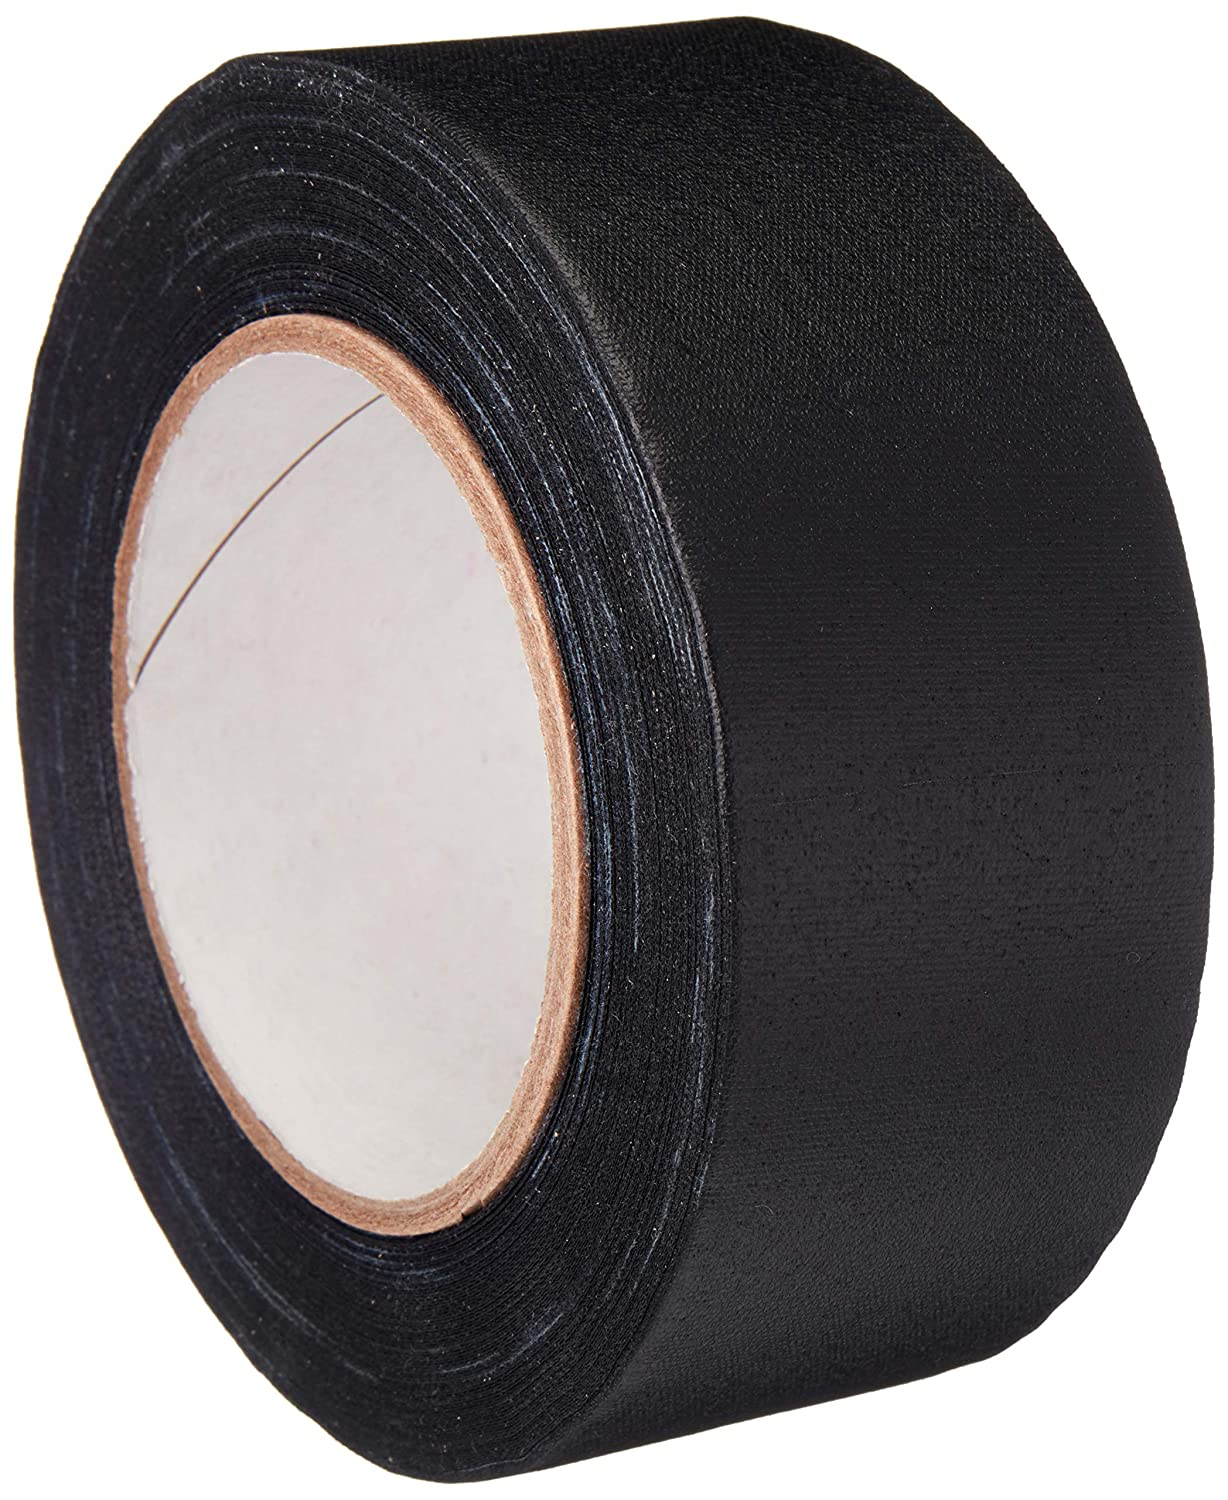 AmazonBasics Gaffers Tape - 2 Inch x 90 Feet, Black